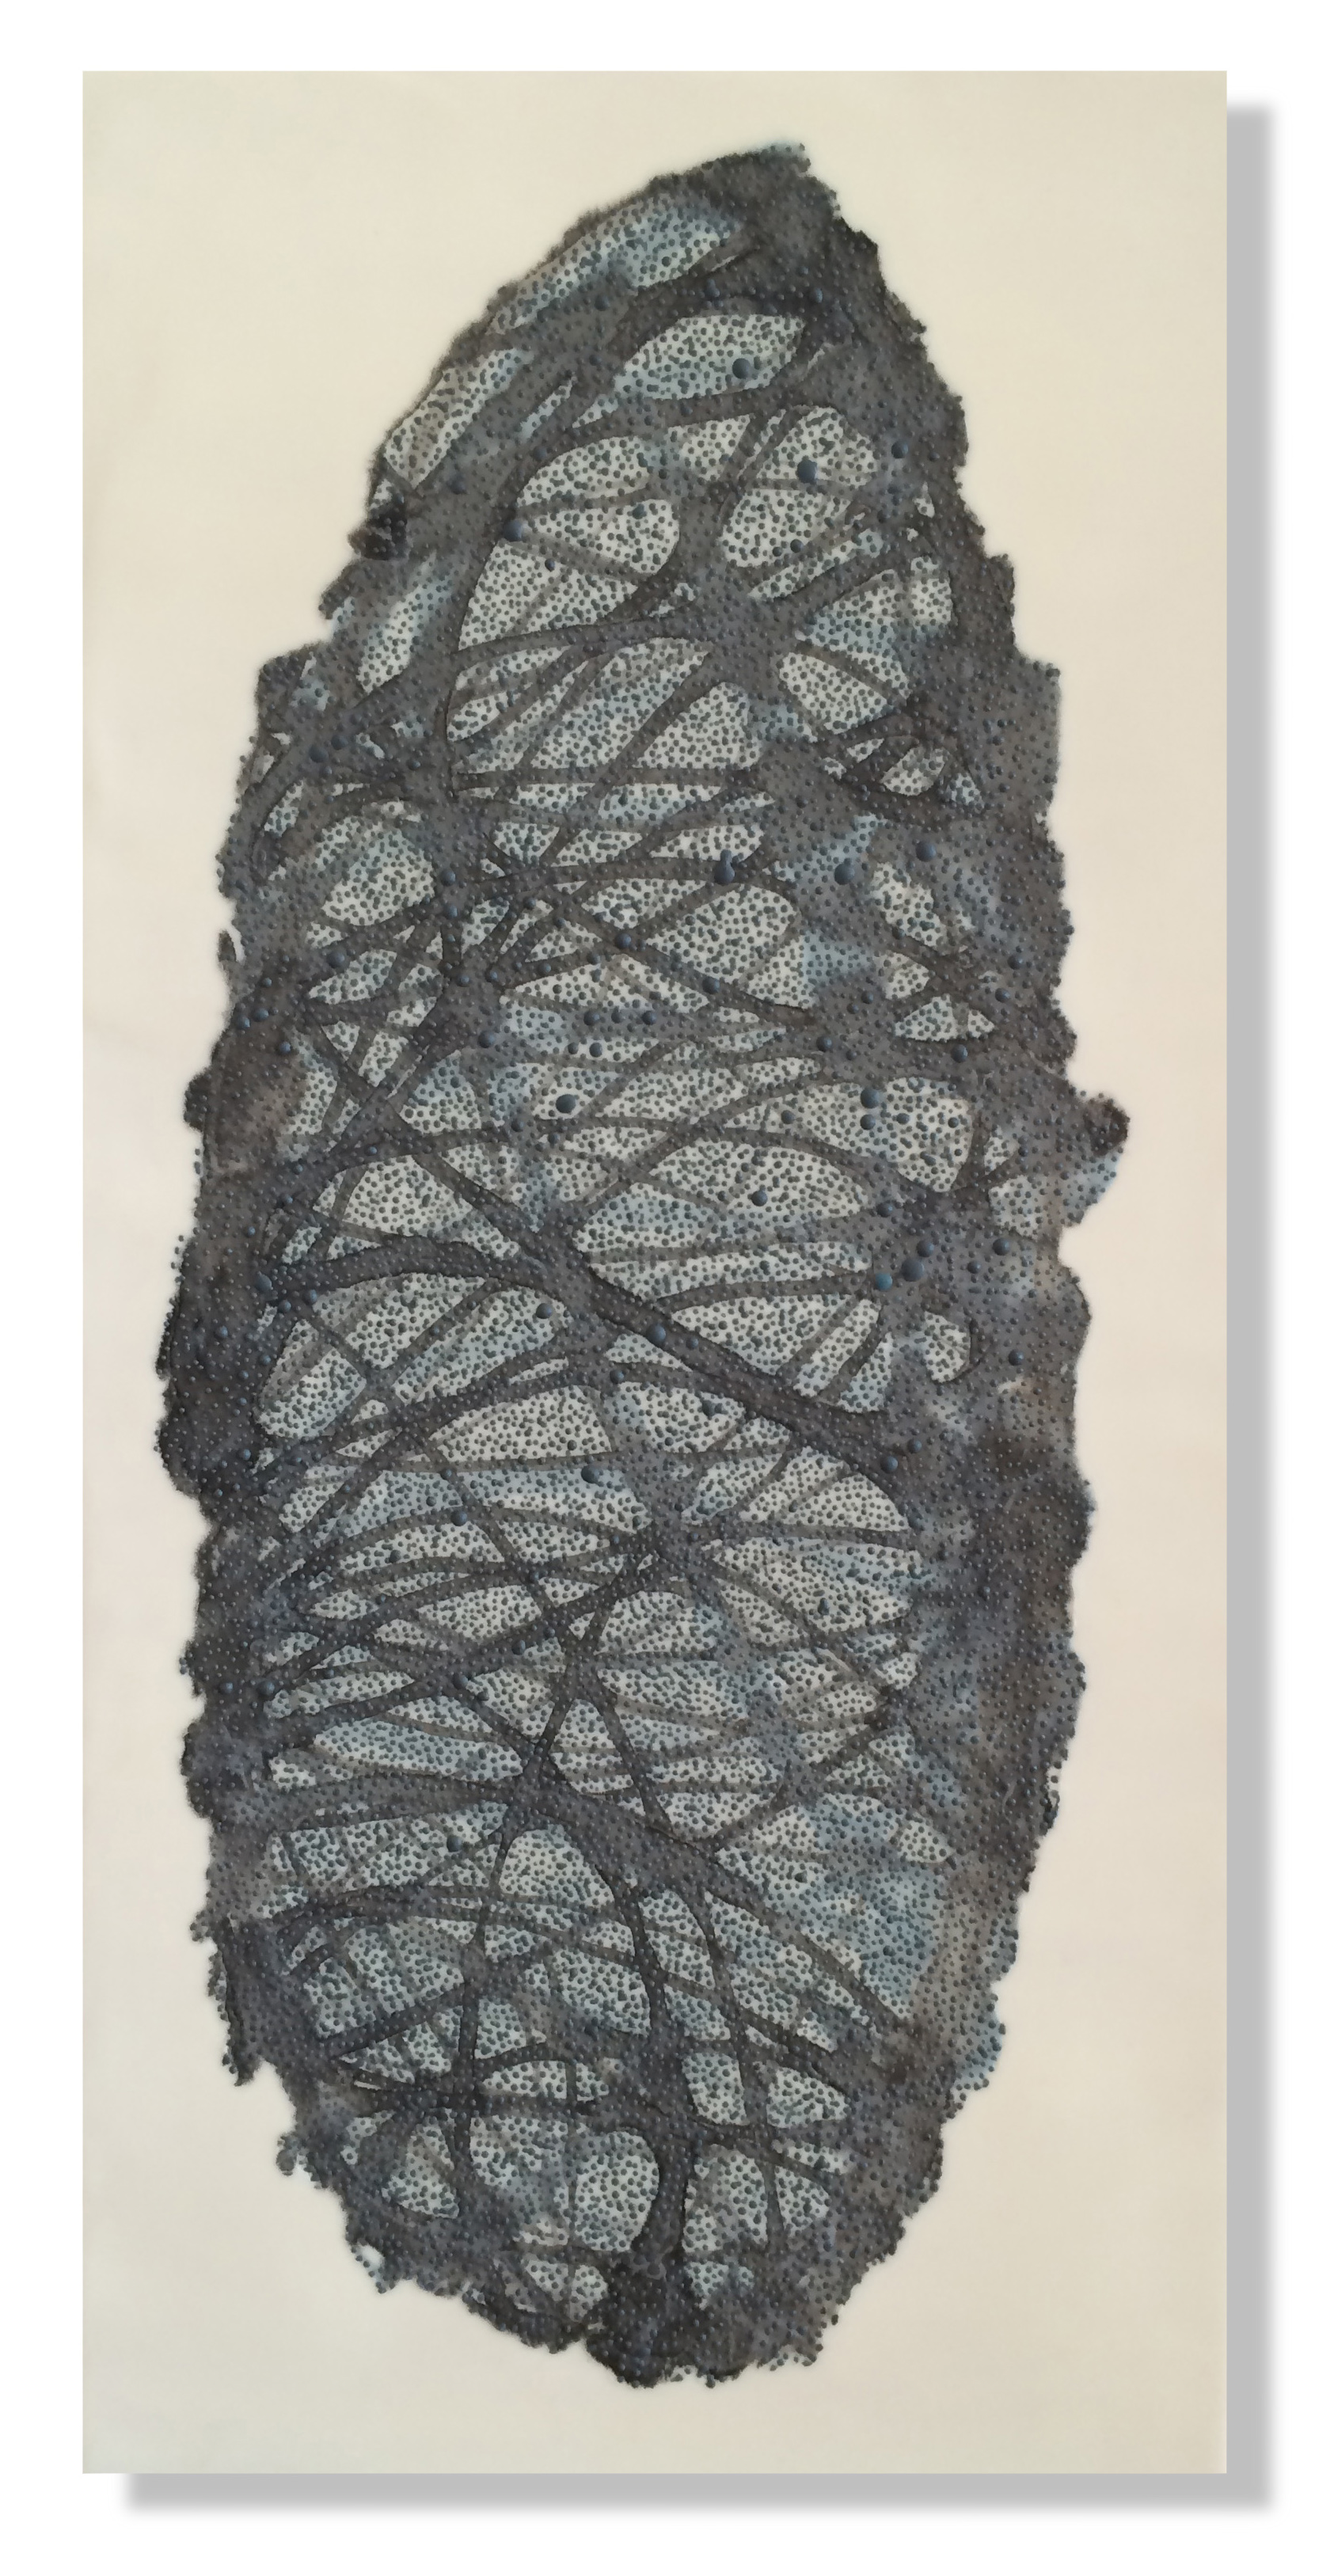 """Cocoon 3B, 2015 Encaustic, Mulberry Paper, Watercolor 12"""" x 24""""x 1"""" SOLD"""